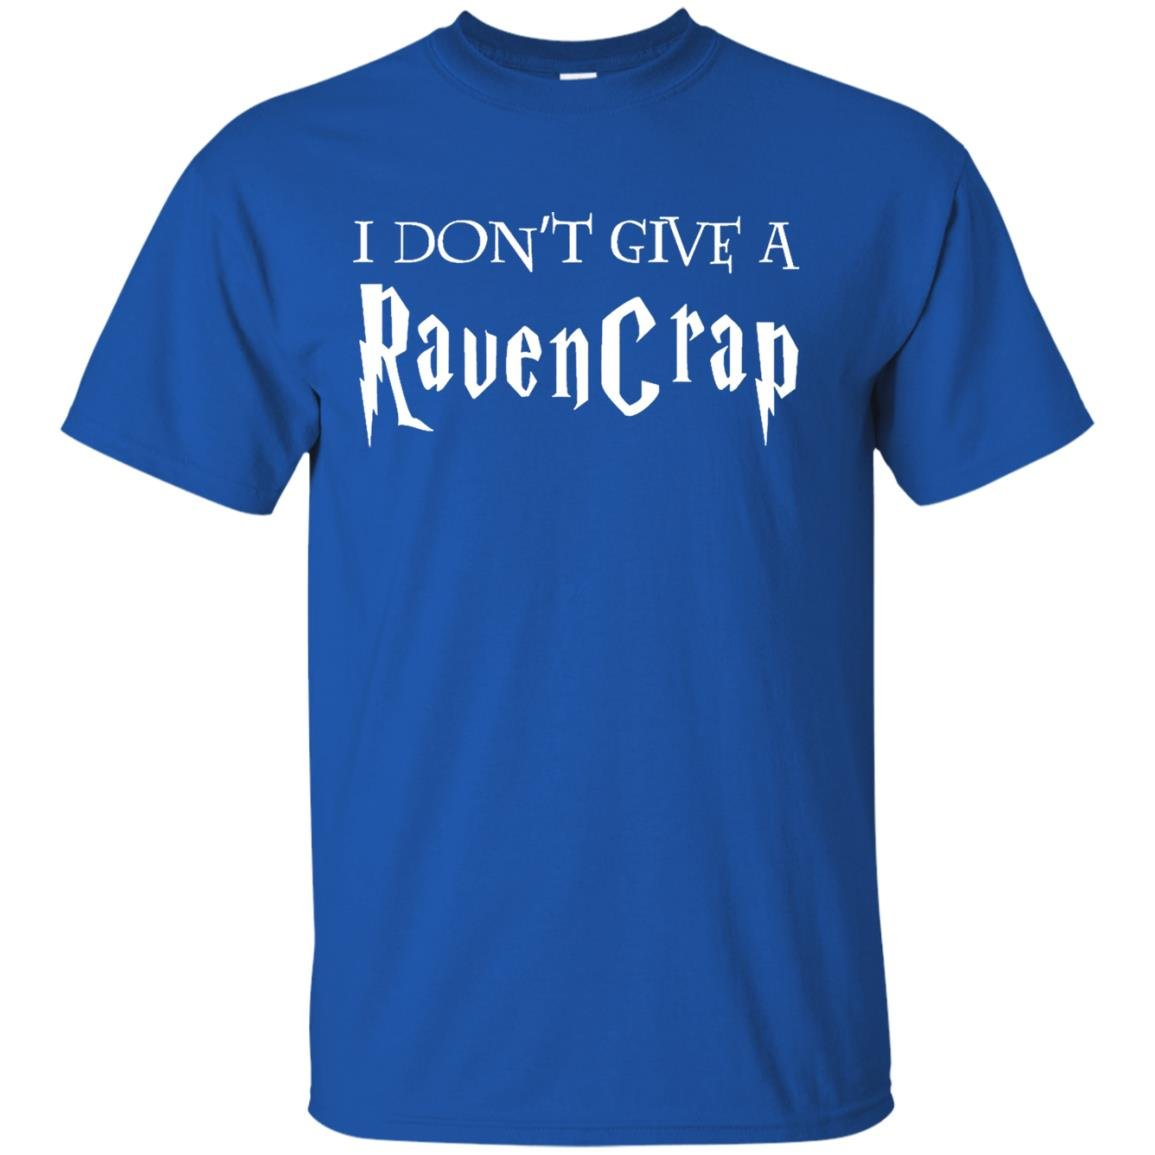 image 686 - Harry Potter: I don't give a Ravencrap shirt & sweater